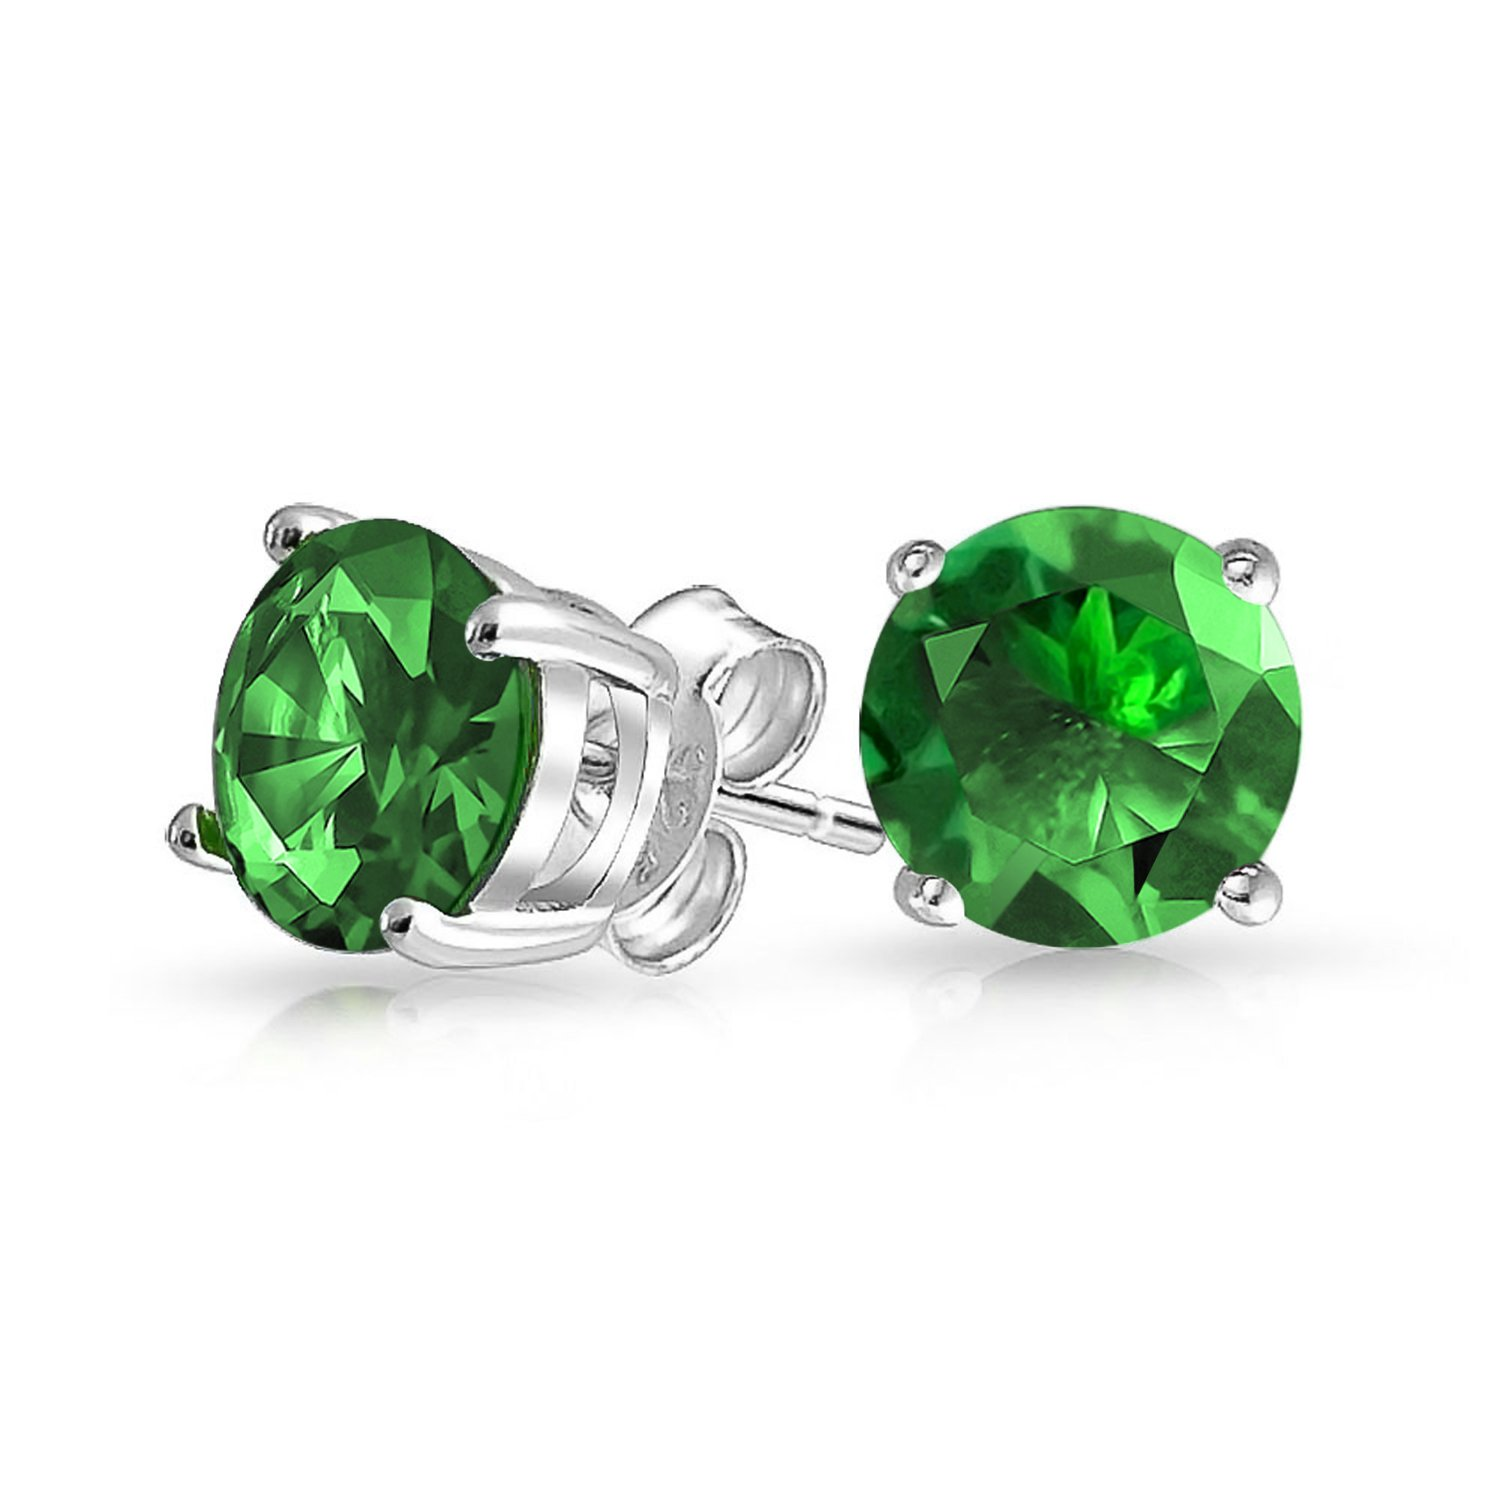 Bling Jewelry 925 Sterling Silver Round Basket Set Simulated Emerald CZ Stud Earrings 7mm ZDC-C008S-EM